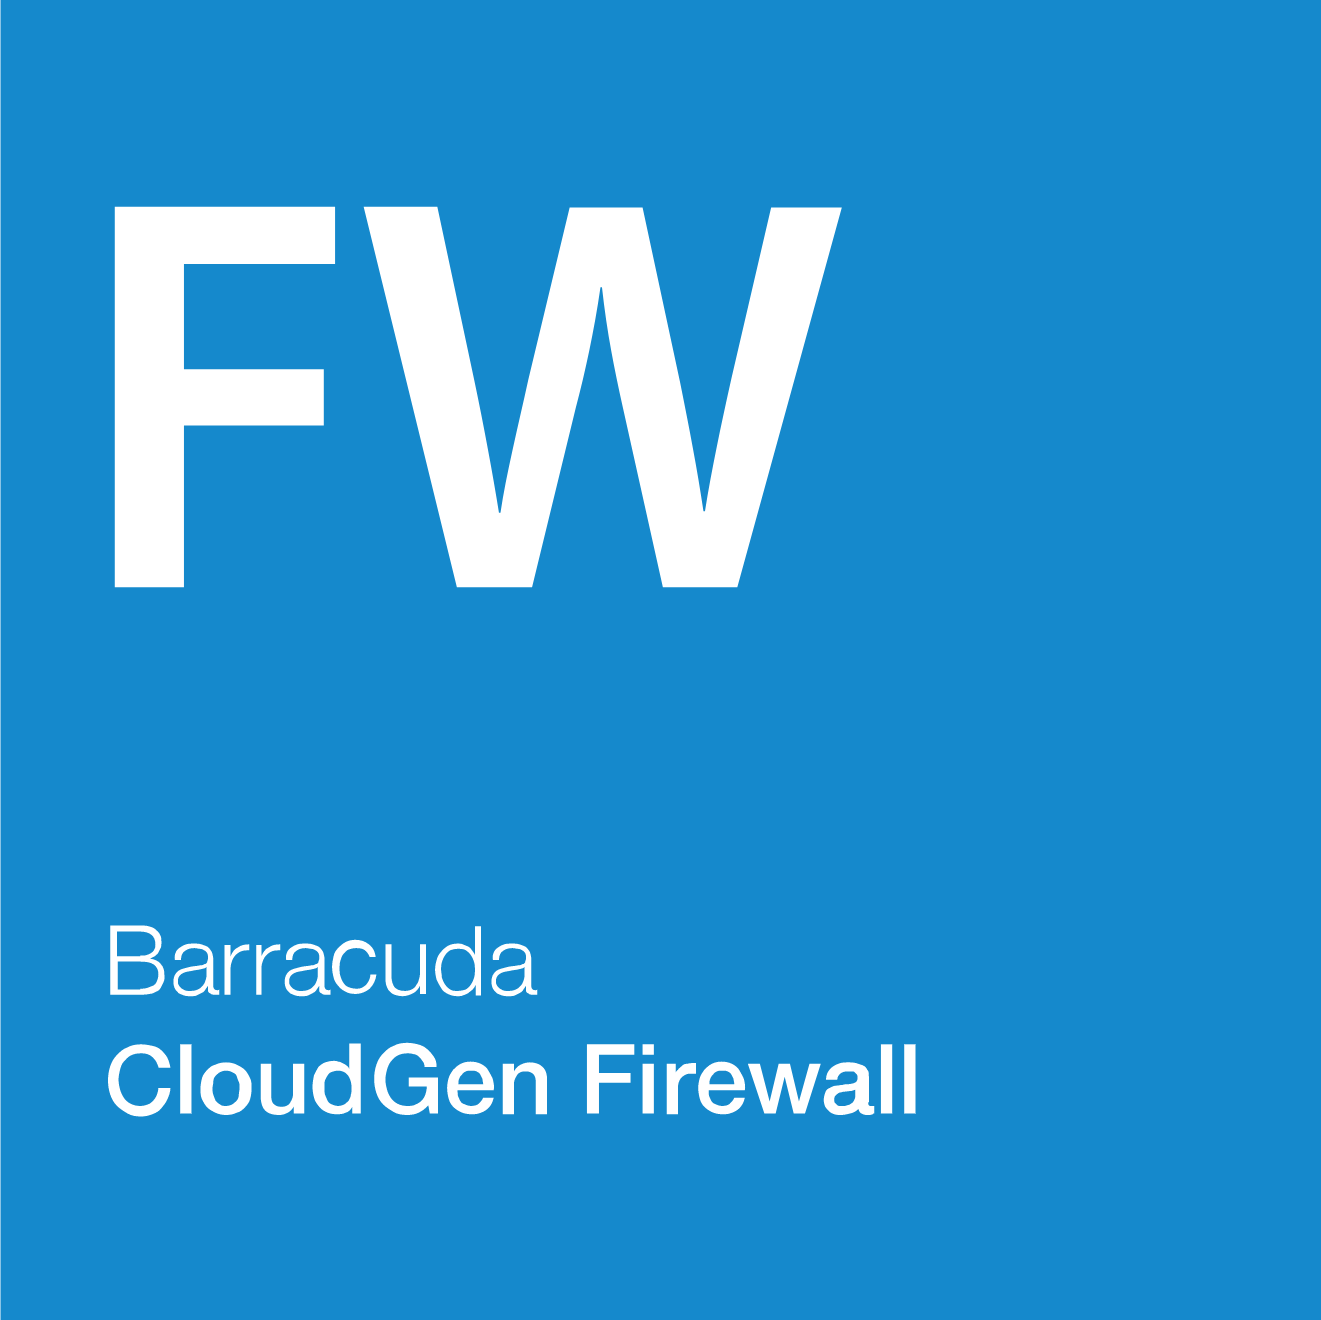 CloudGen Firewall